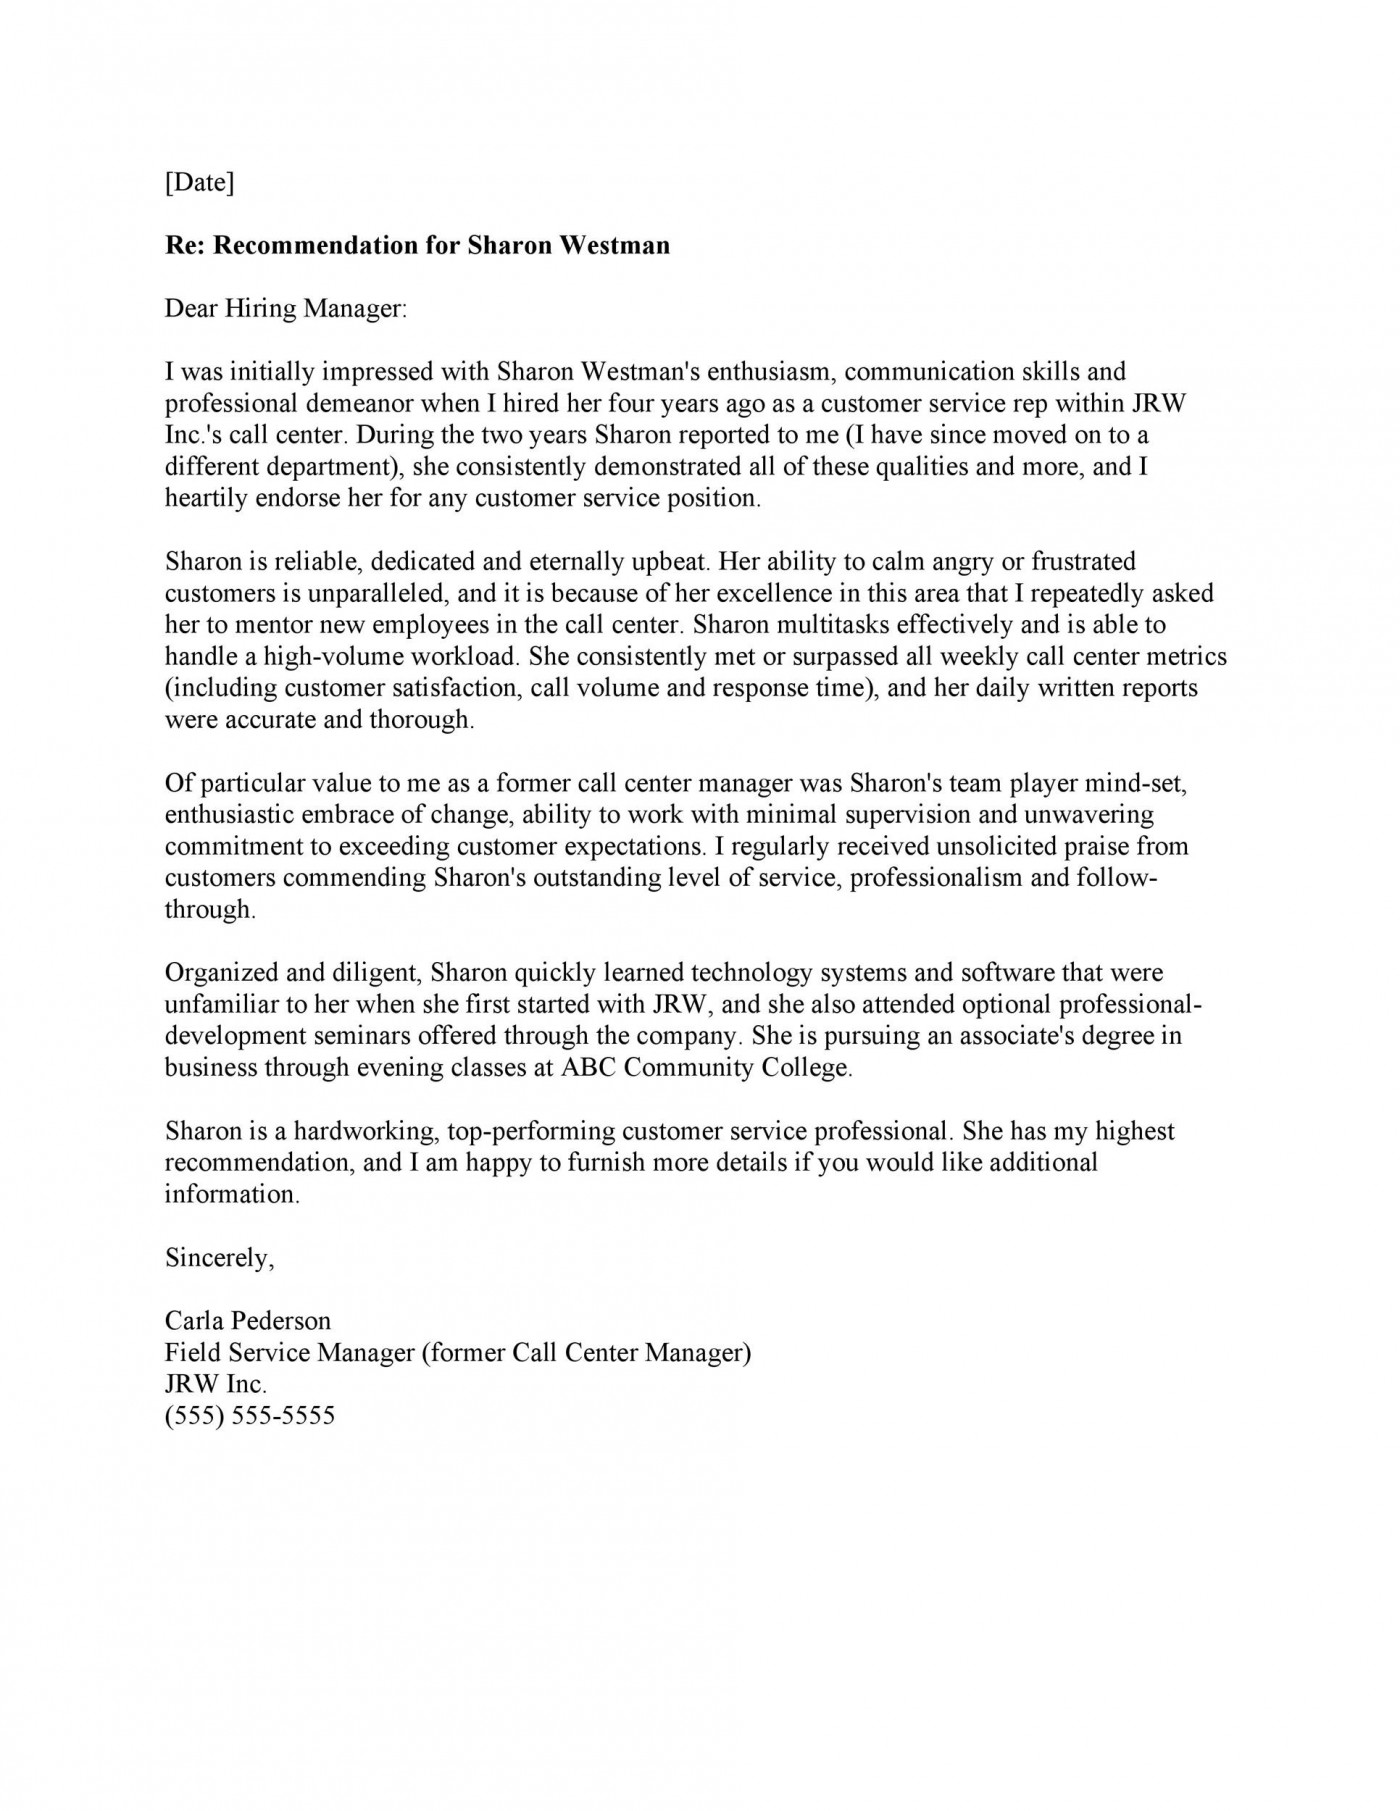 007 Fearsome Professional Reference Letter Template Inspiration  Nursing Free Character1400